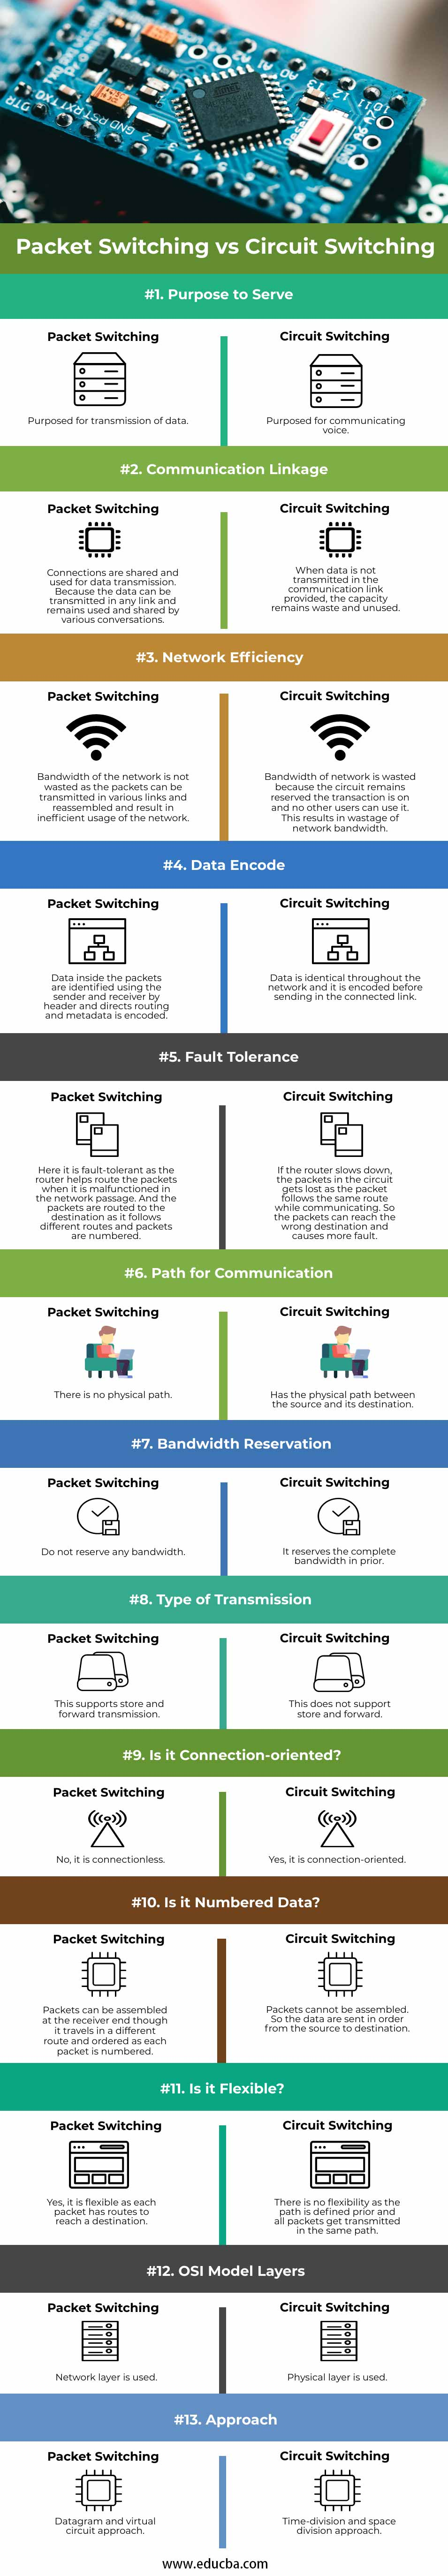 Packet Switching vs Circuit Switching info